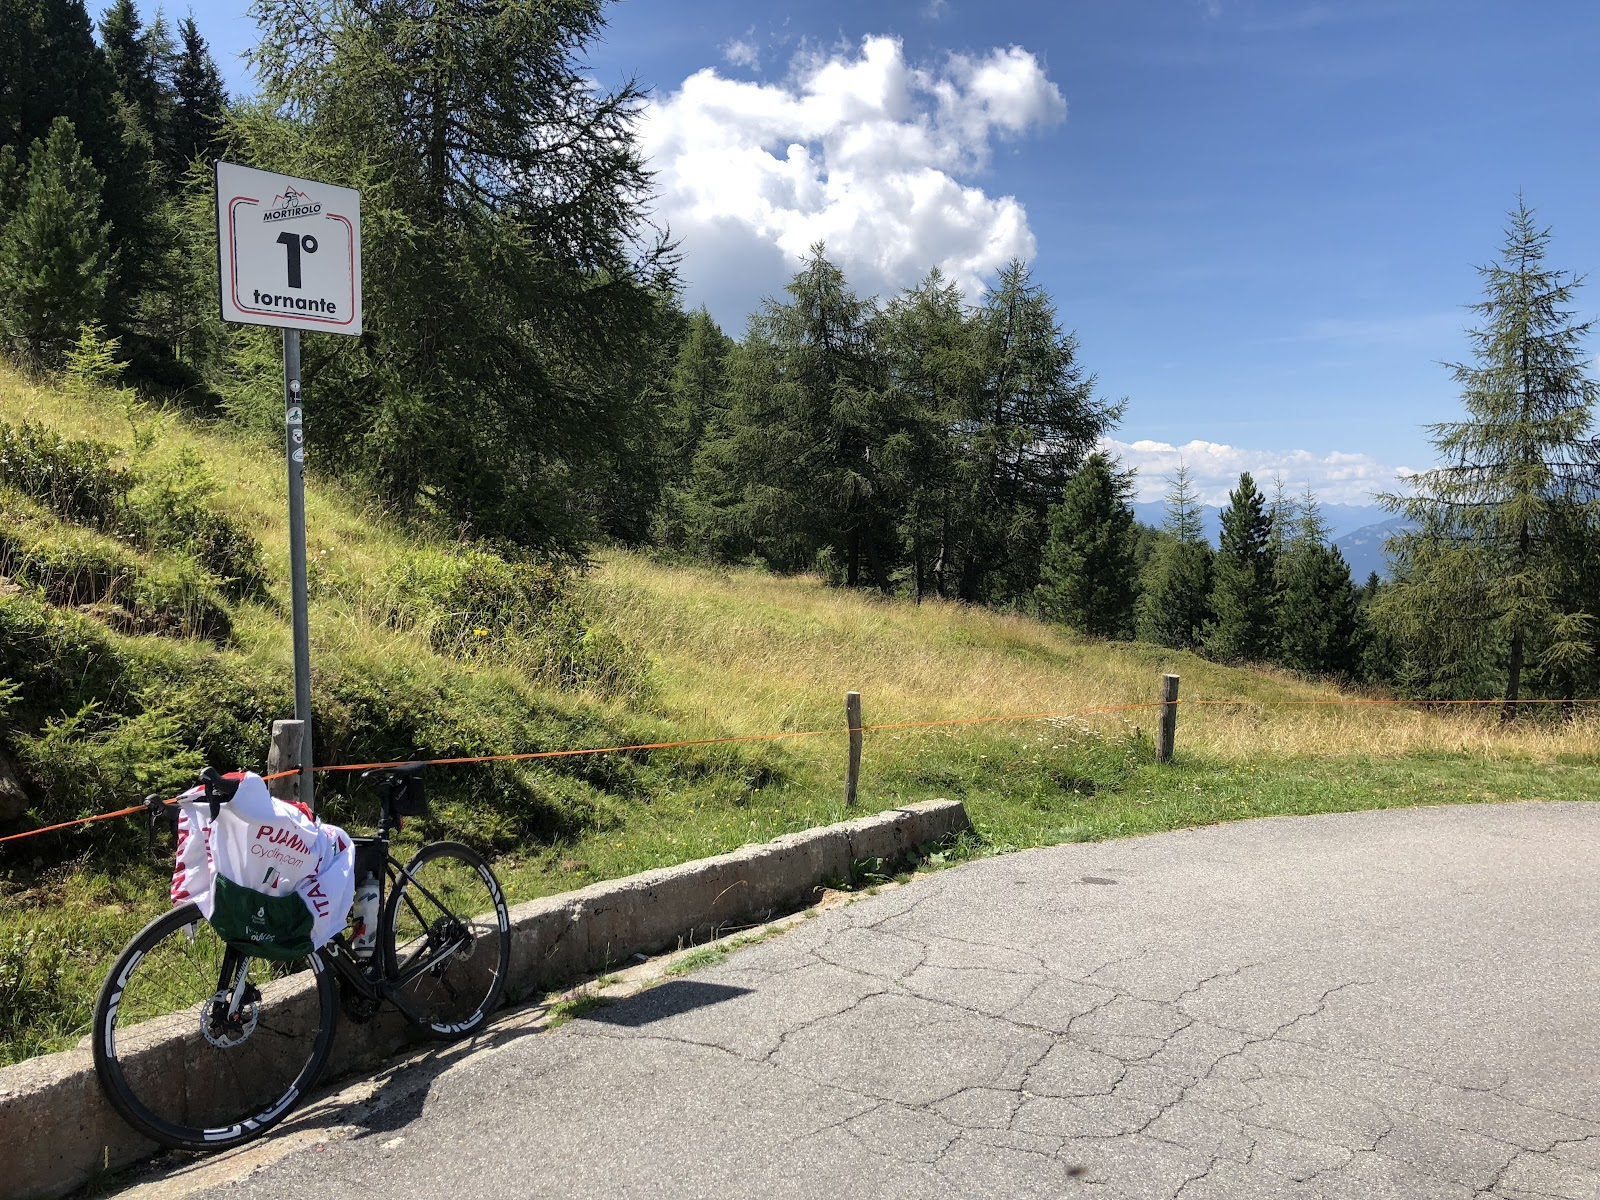 Climbing Passo del Mortirolo from Grossio - tornanti 1 sign (hairpin) with bike leaning against it.